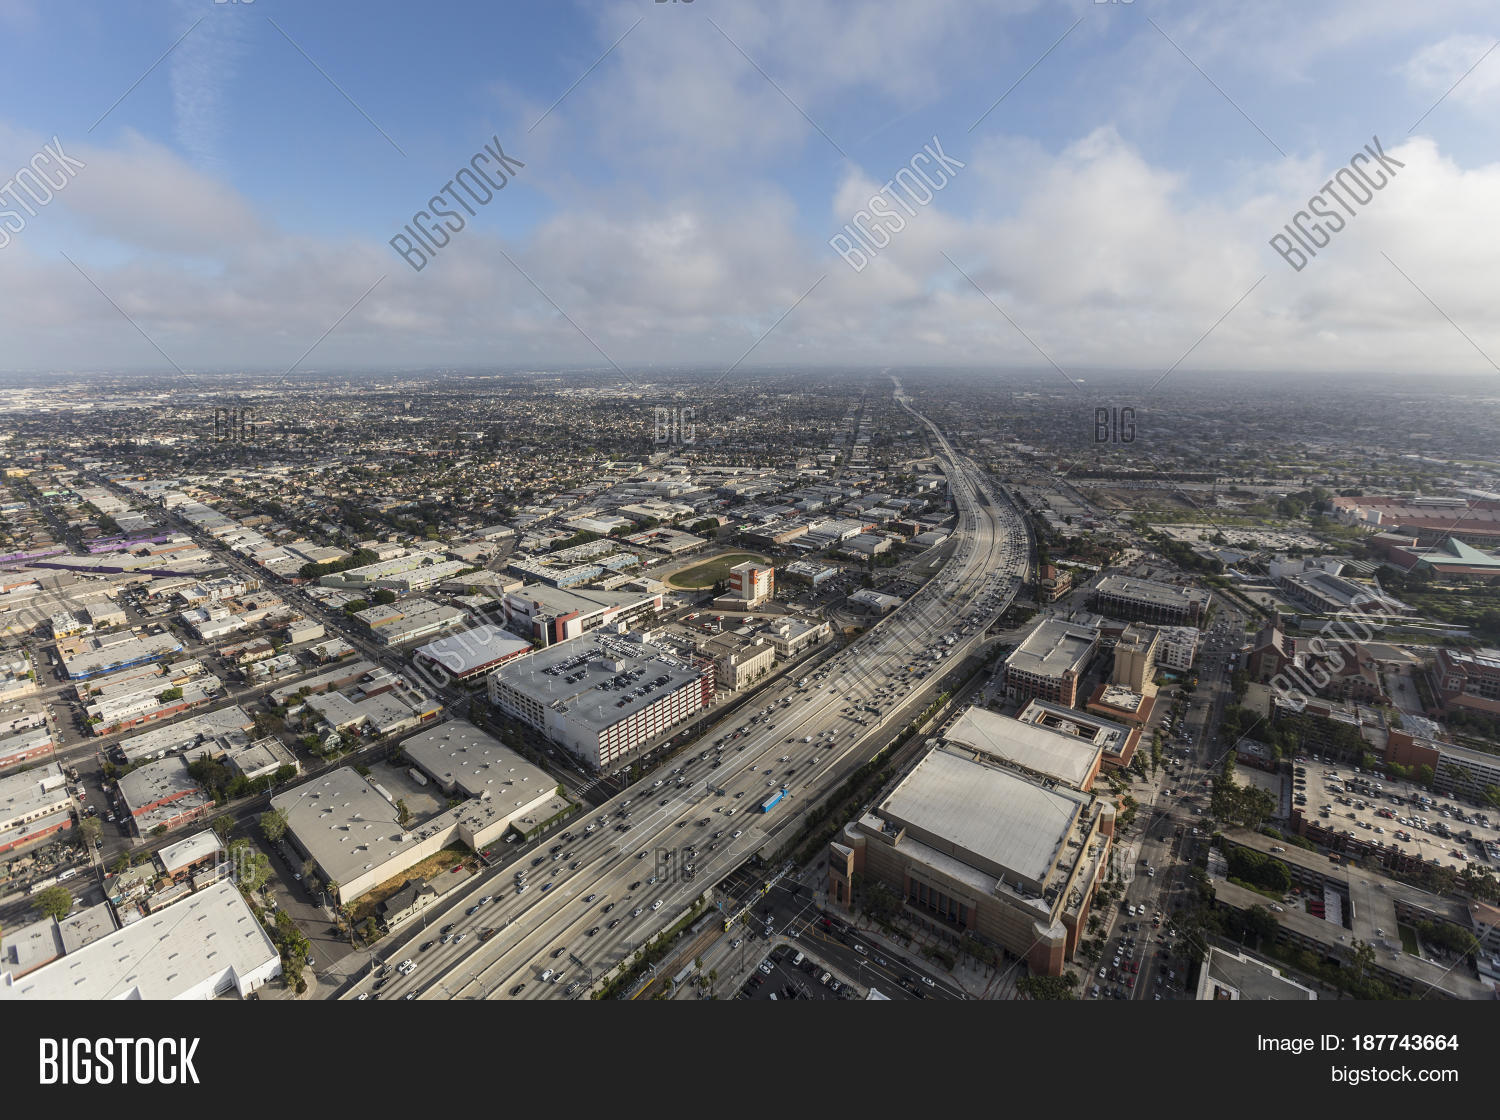 Los Angeles, Image & Photo (Free Trial) | Bigstock